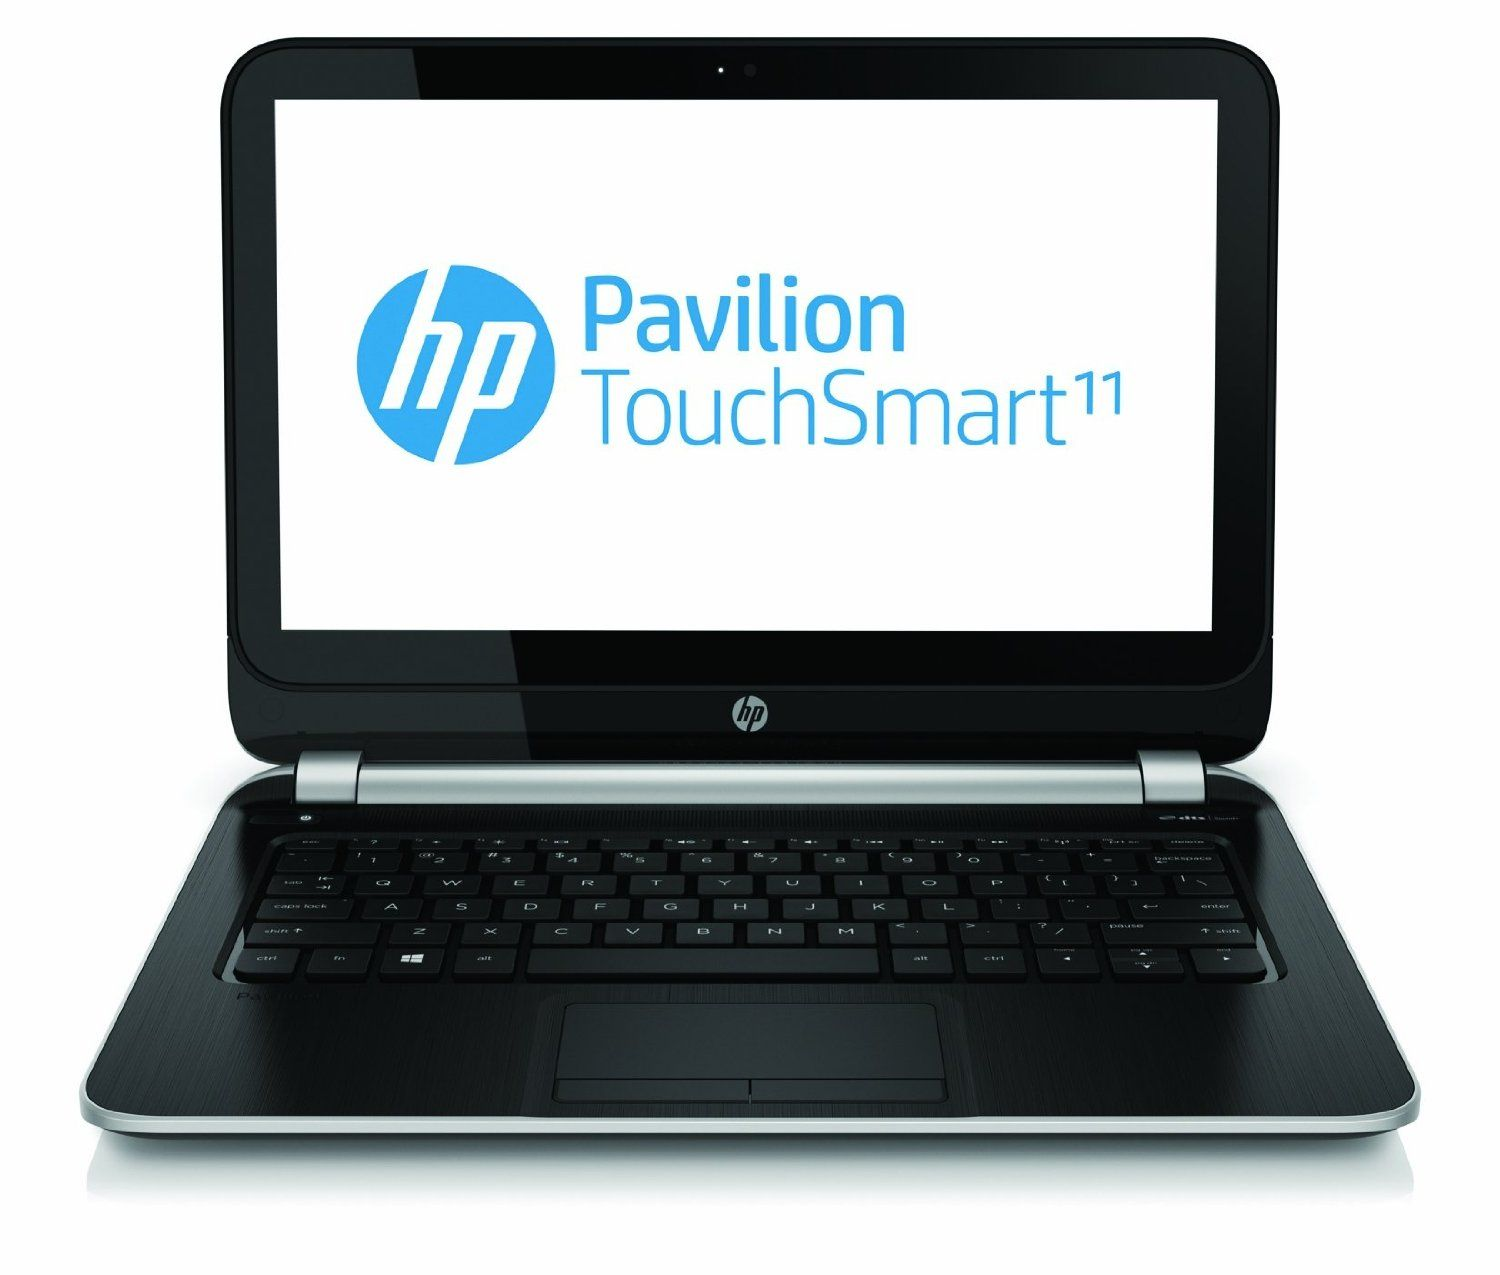 Hp Pavilion Touchsmart 11 E010nr 11 6 Inch Touchscreen Laptop Pavilion Laptop Hp Pavilion Laptop